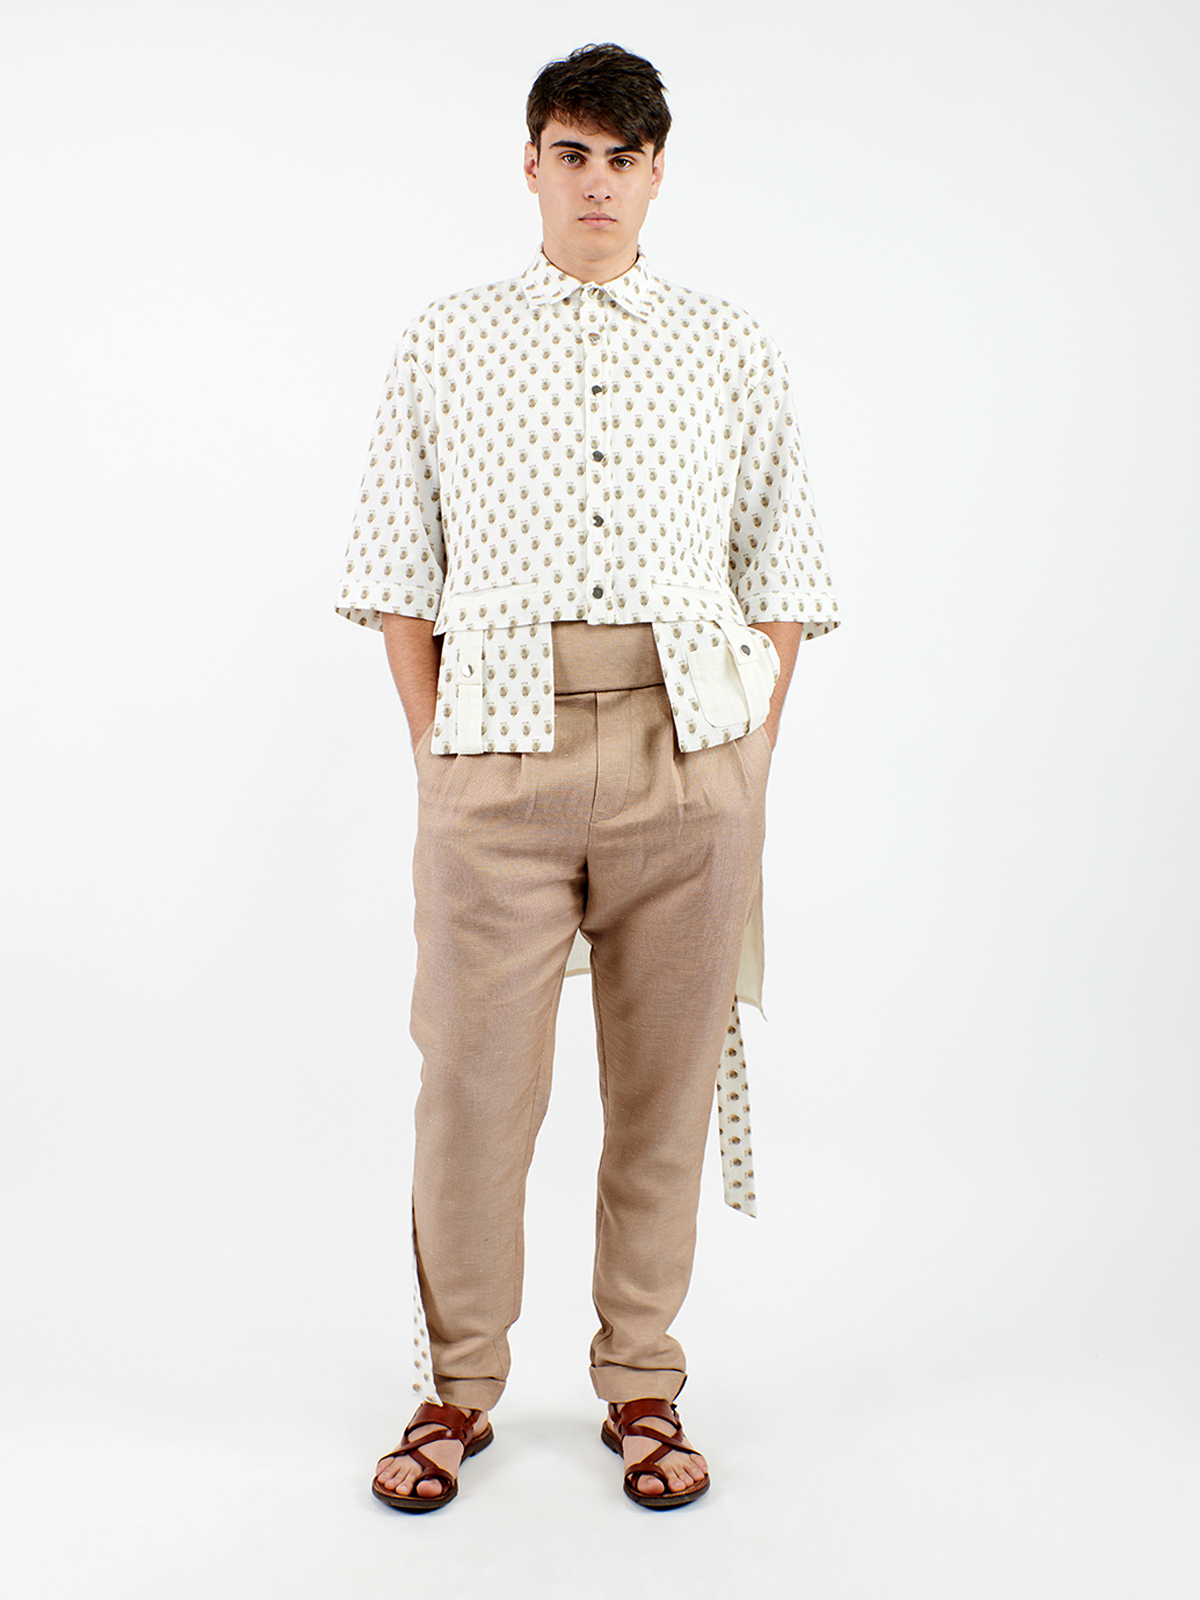 Unisex shirt with small sheeps